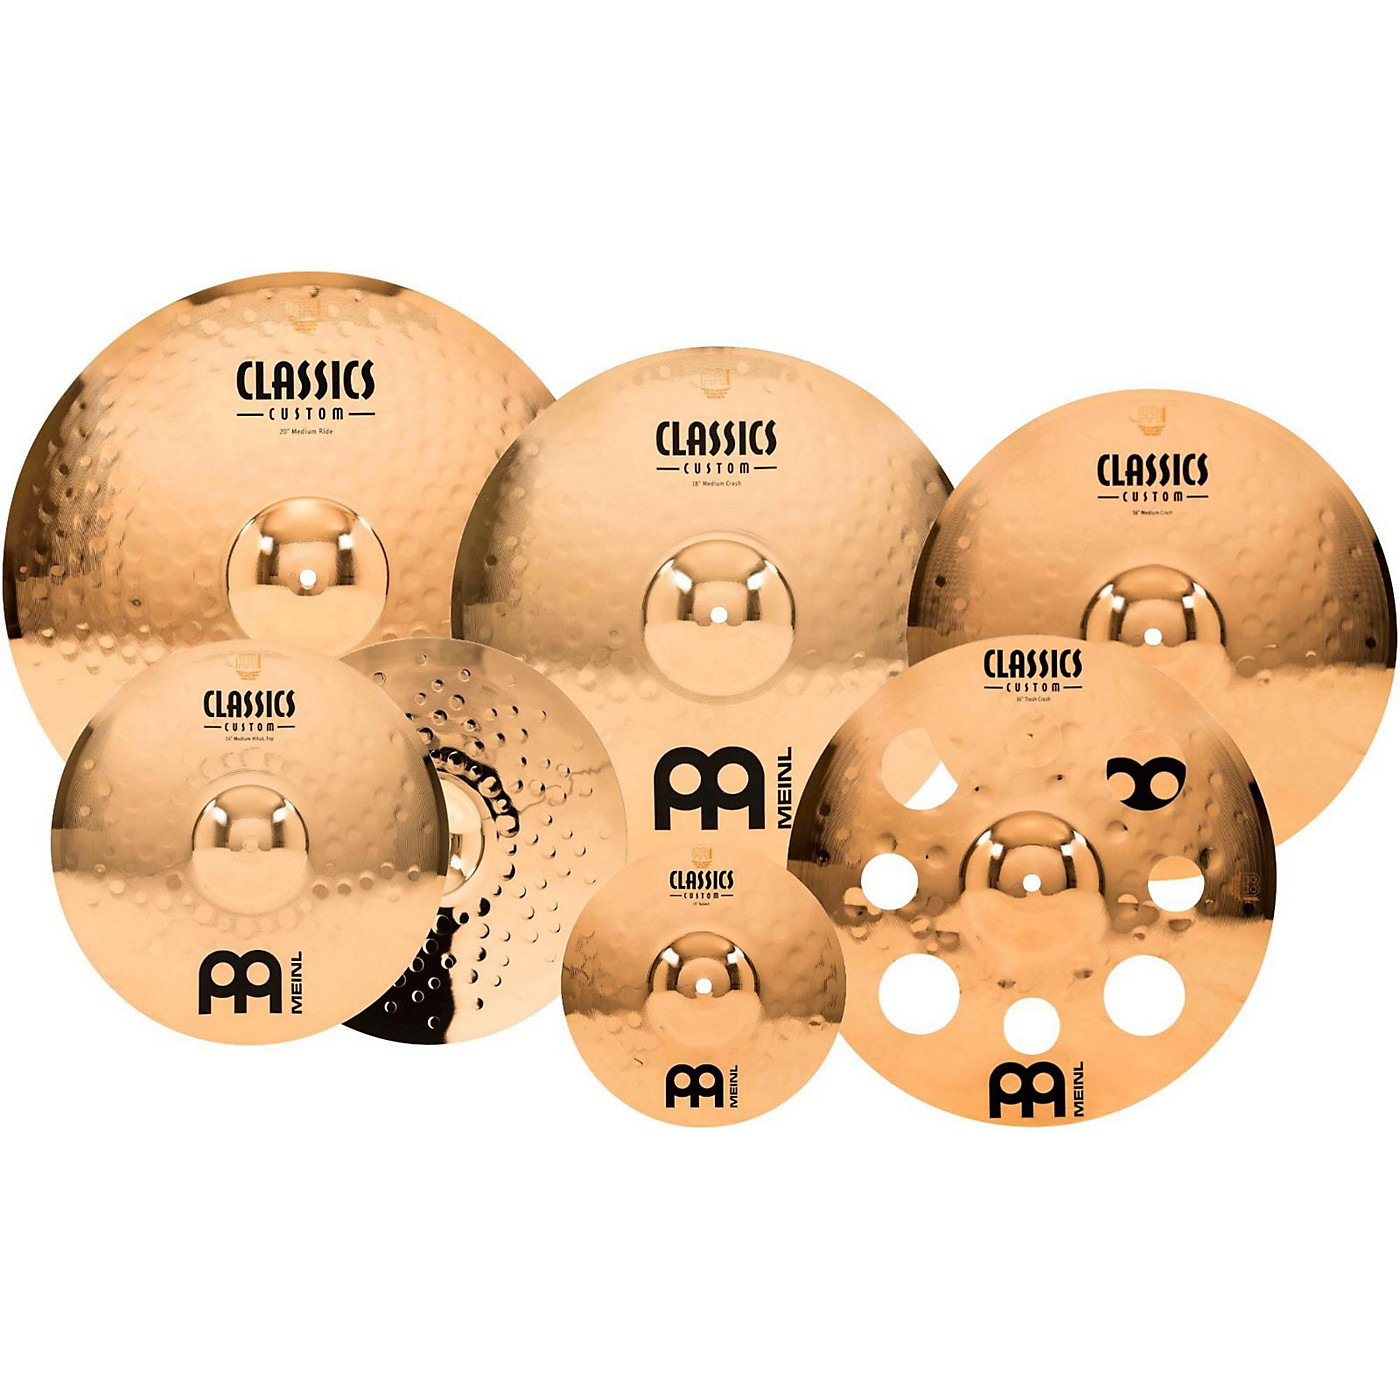 Meinl Classics Custom Double Bonus Pack Cymbal Box Set with FREE 10